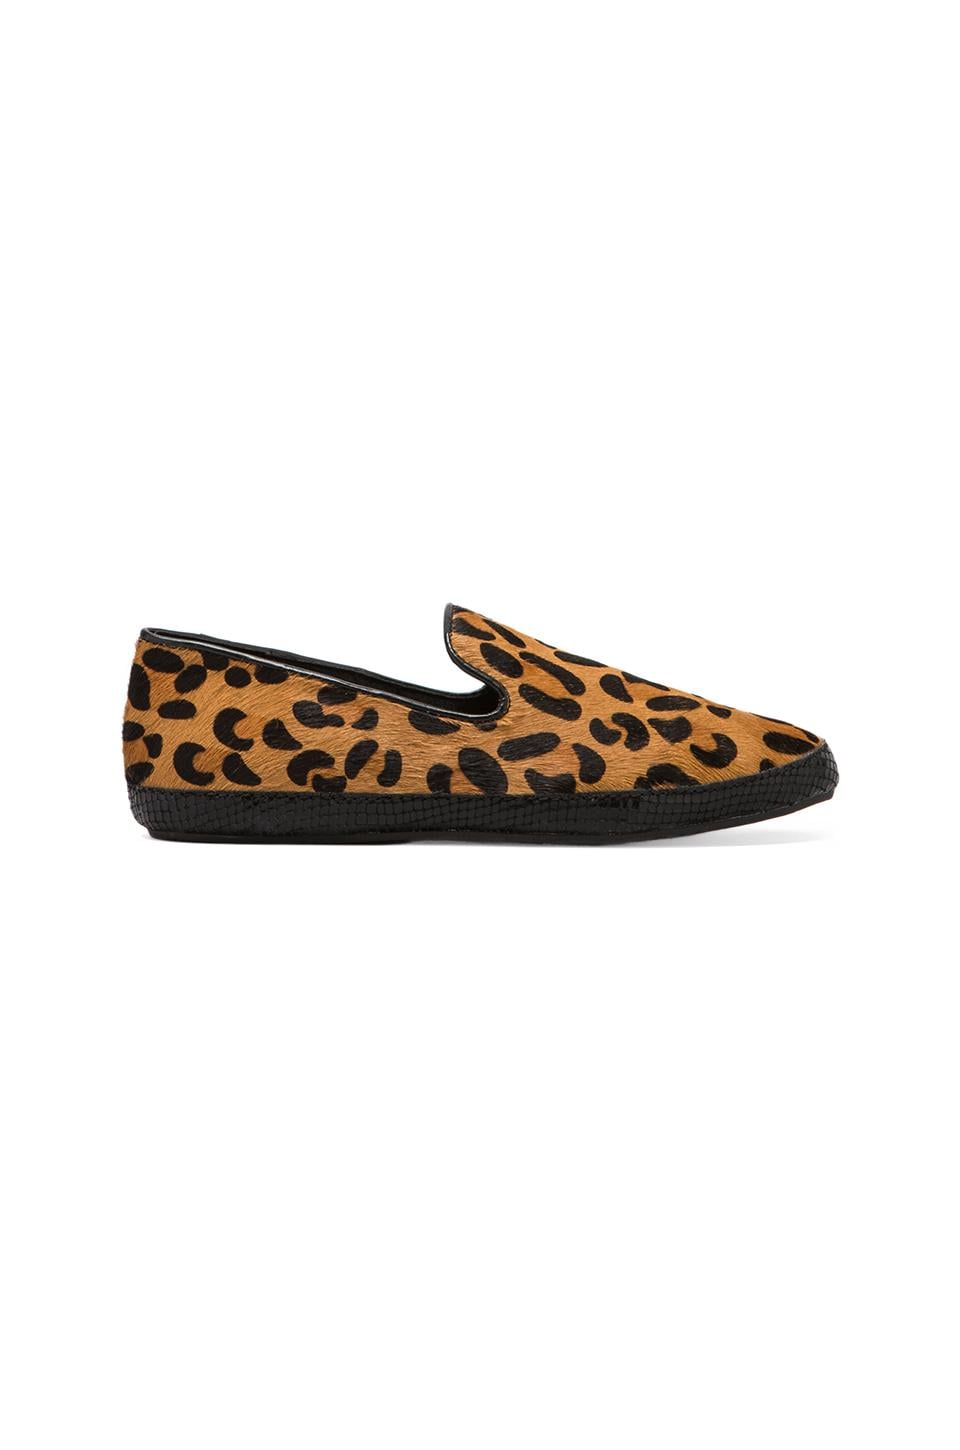 Steven Clutch Loafer with Calf Hair in Leopard Pony